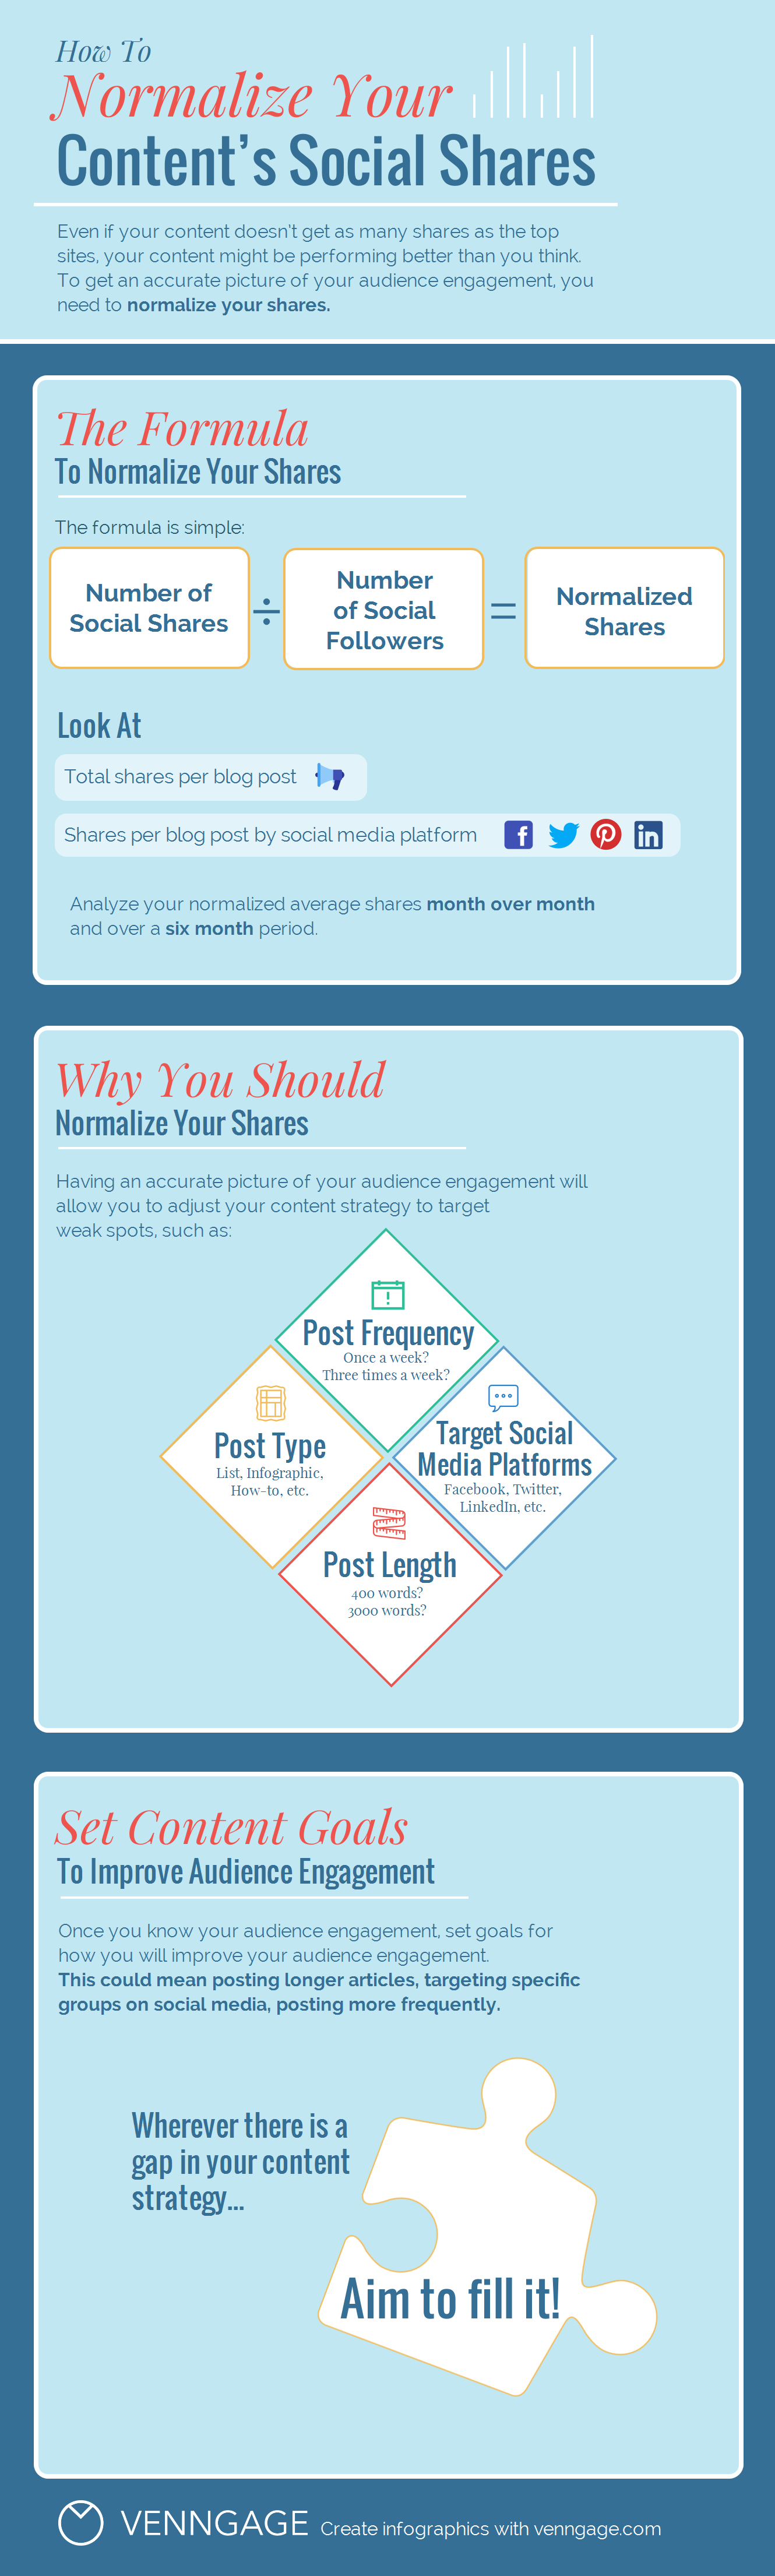 Infographic of tips from post